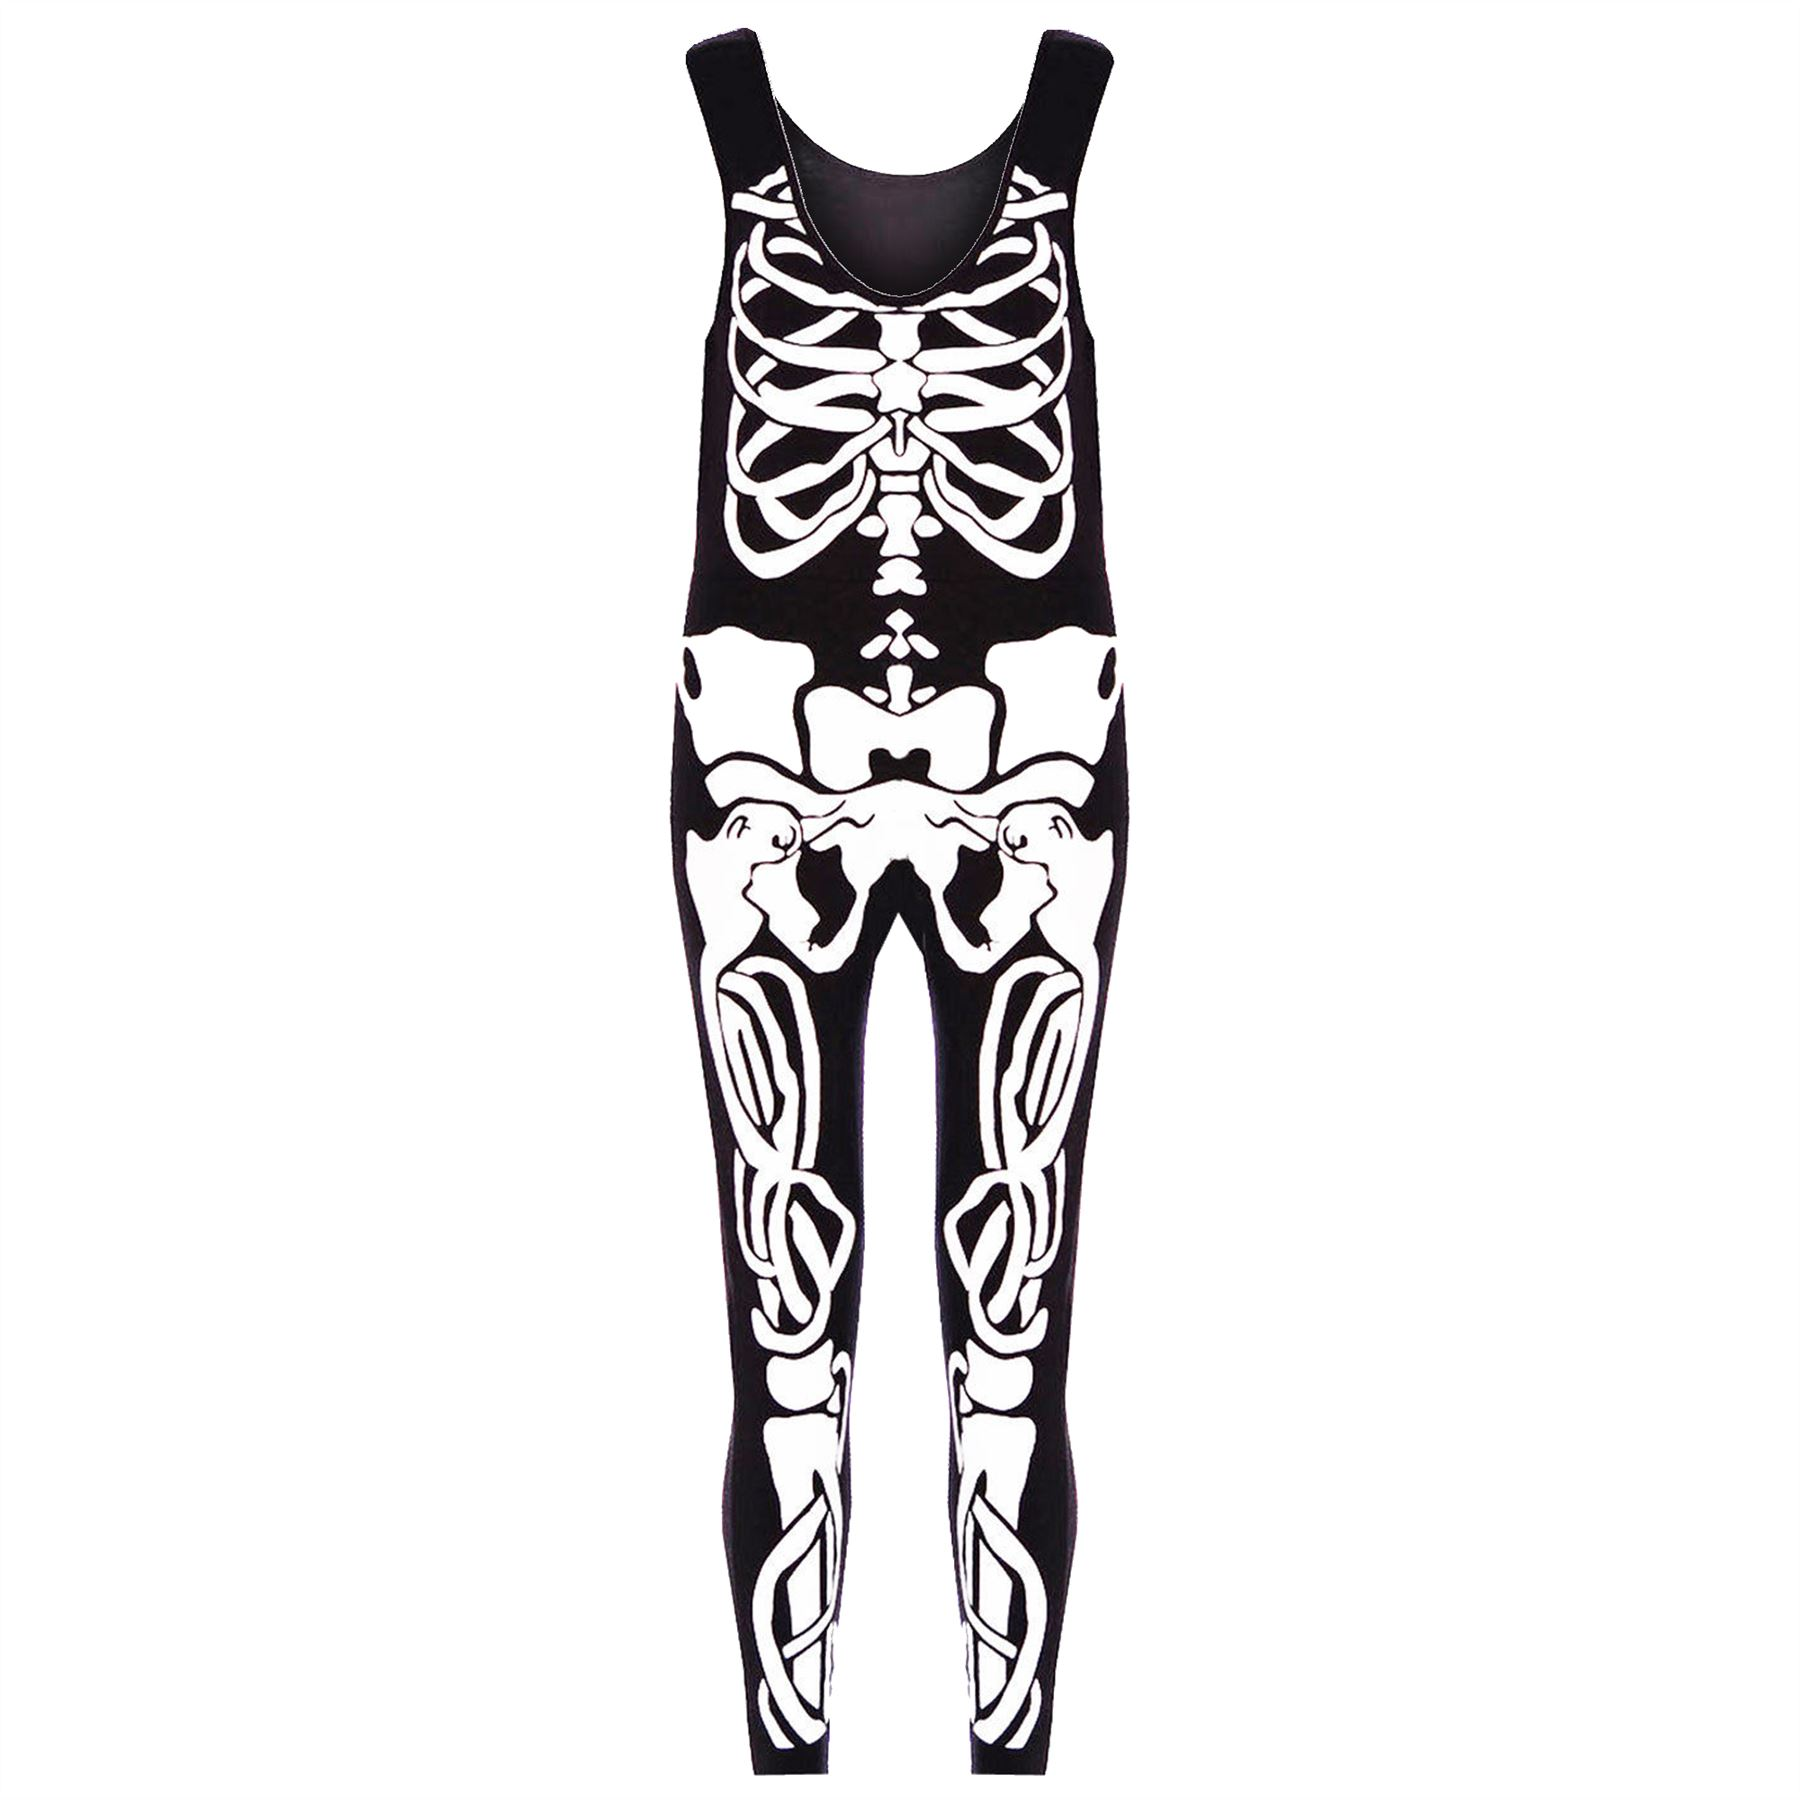 You searched for: skeleton leggings! Etsy is the home to thousands of handmade, vintage, and one-of-a-kind products and gifts related to your search. No matter what you're looking for or where you are in the world, our global marketplace of sellers can help you find unique and affordable options. Let's get started!